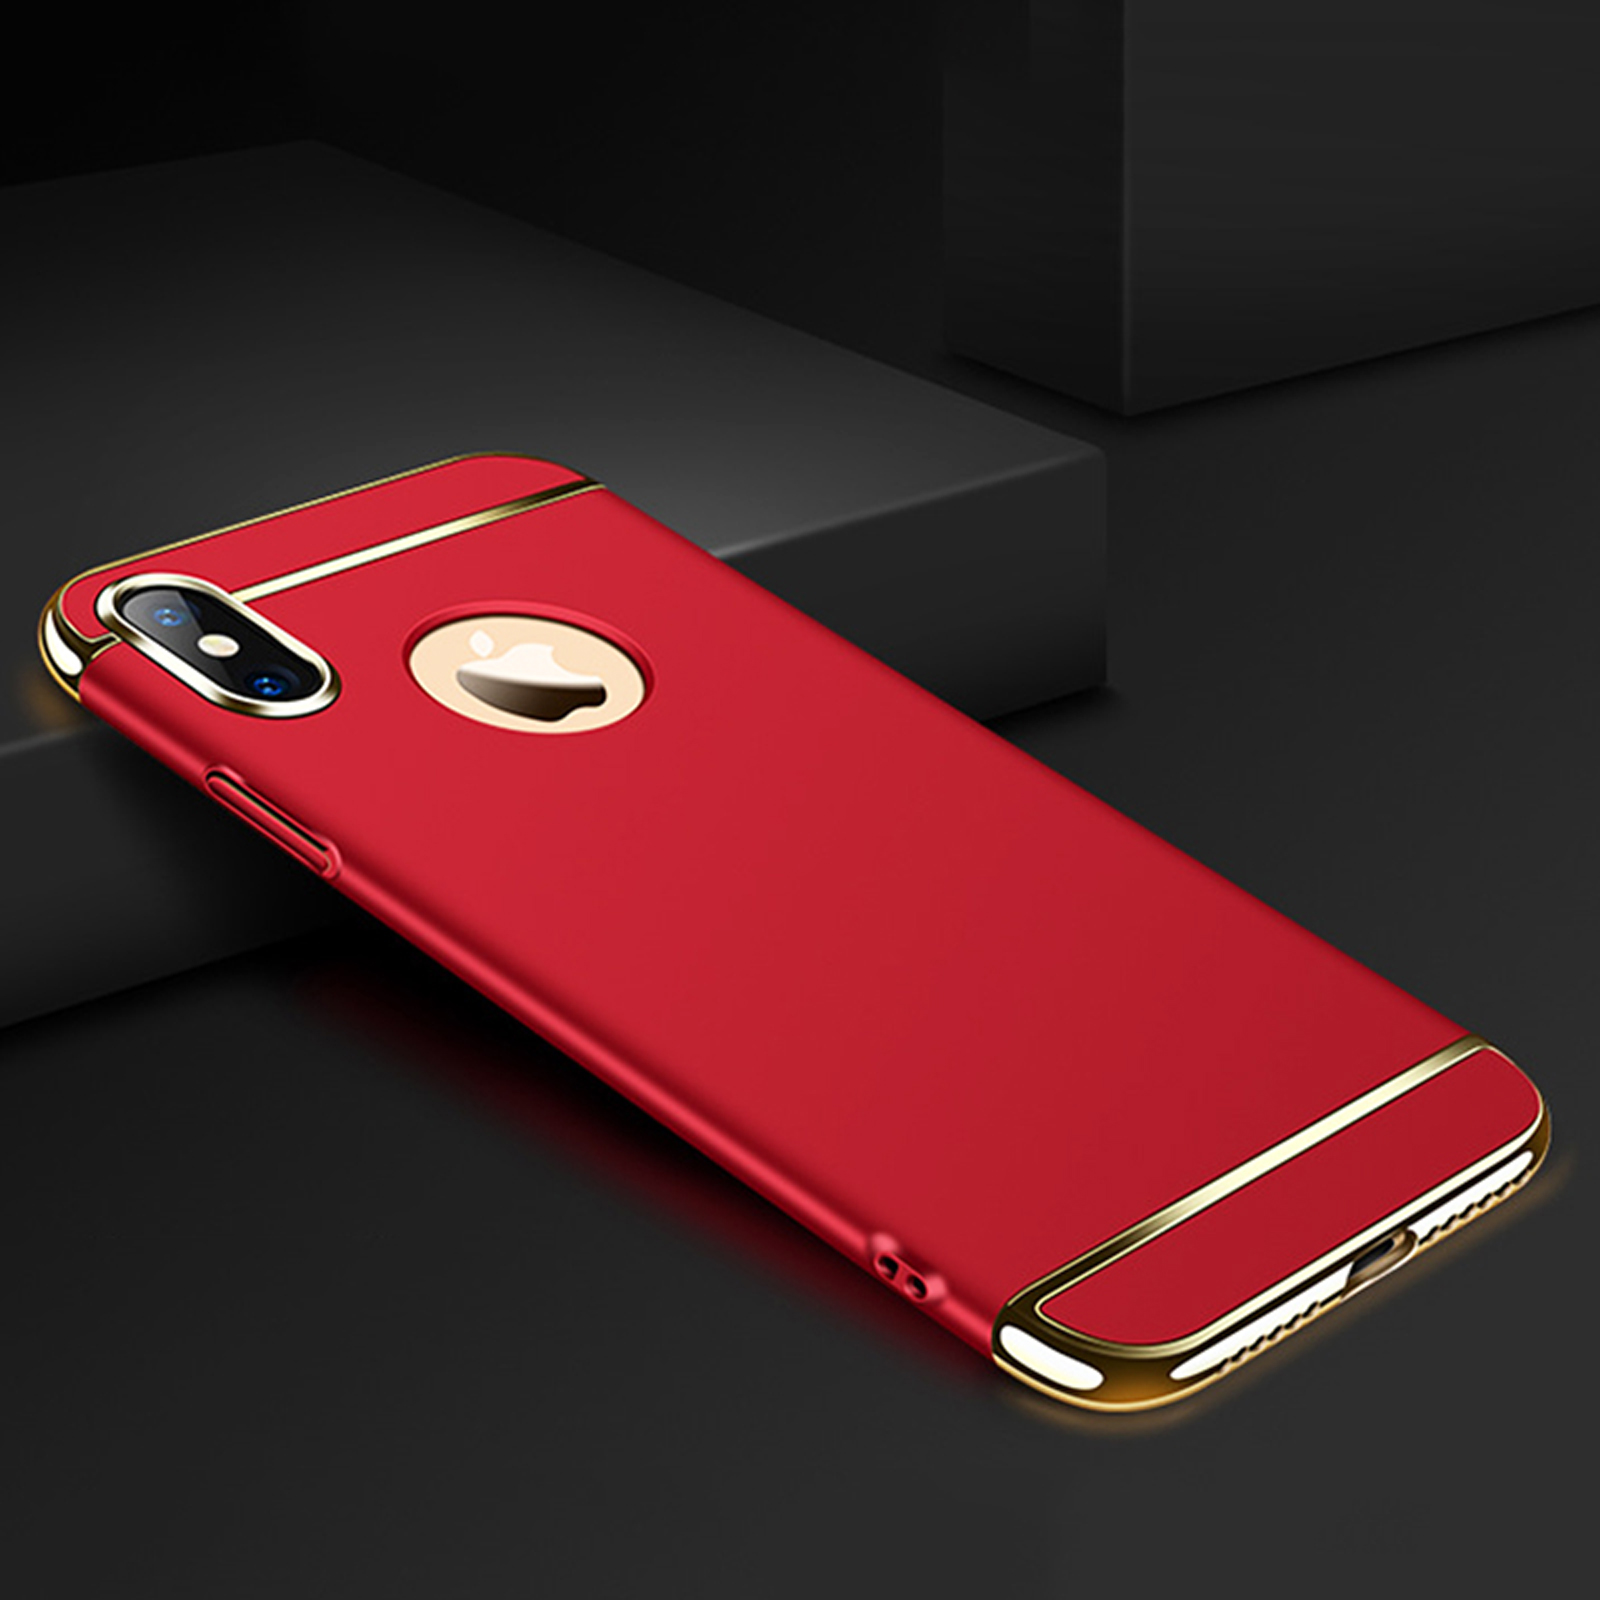 thumbnail 35 - Luxury Matte Case Tempered Glass Cover For Apple iPhone X XS XR Max 10 8 7 6s 6